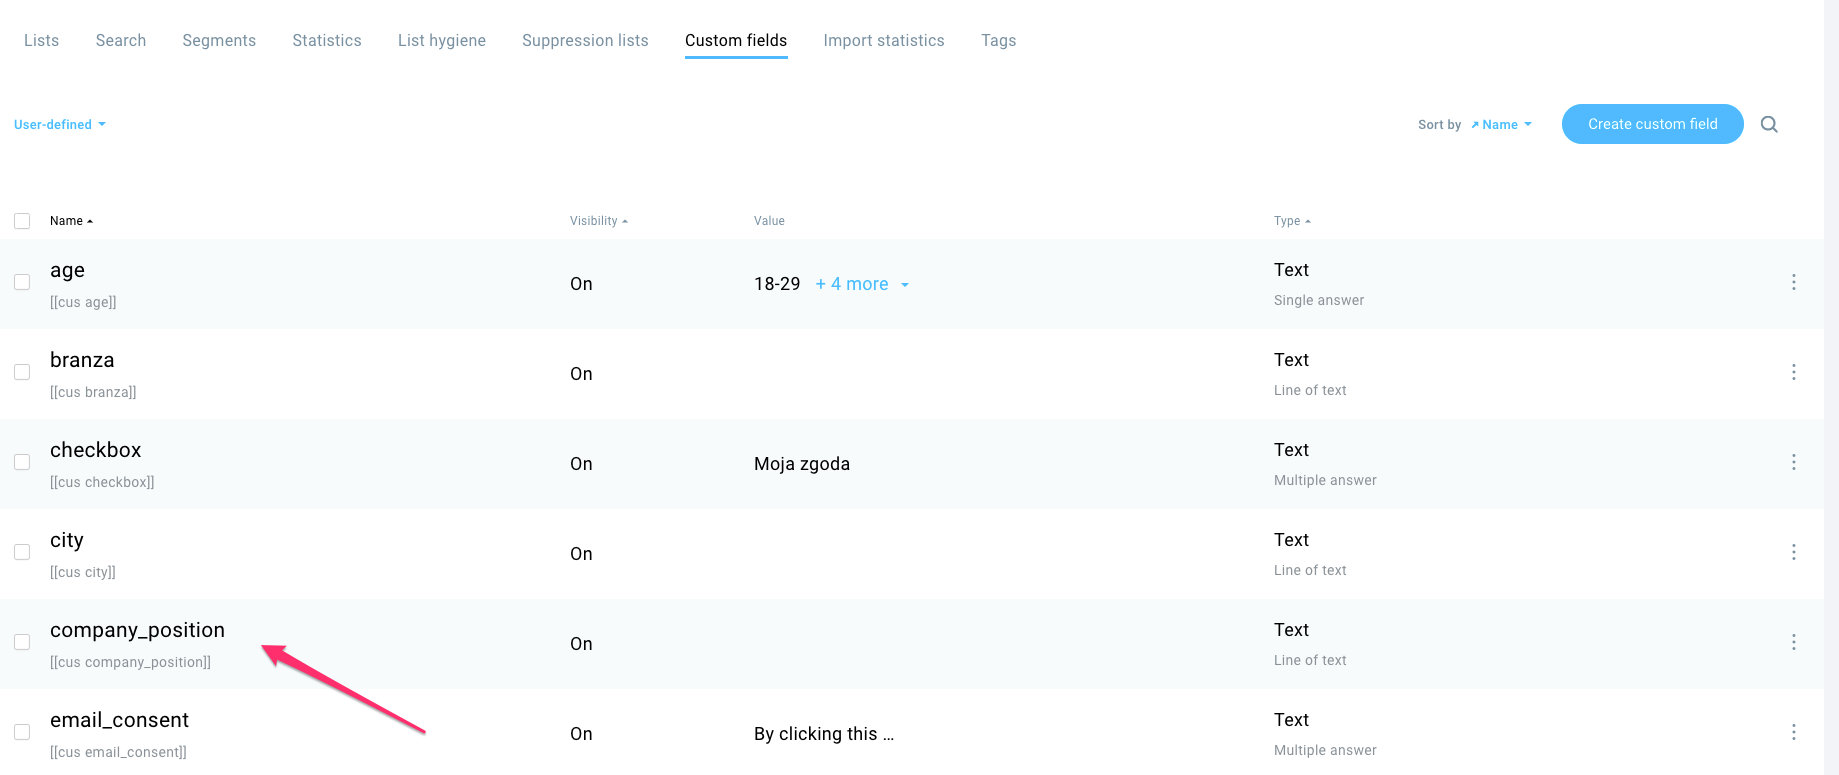 A new custom field has been successfully created and it's visible on the manage custom fields page.